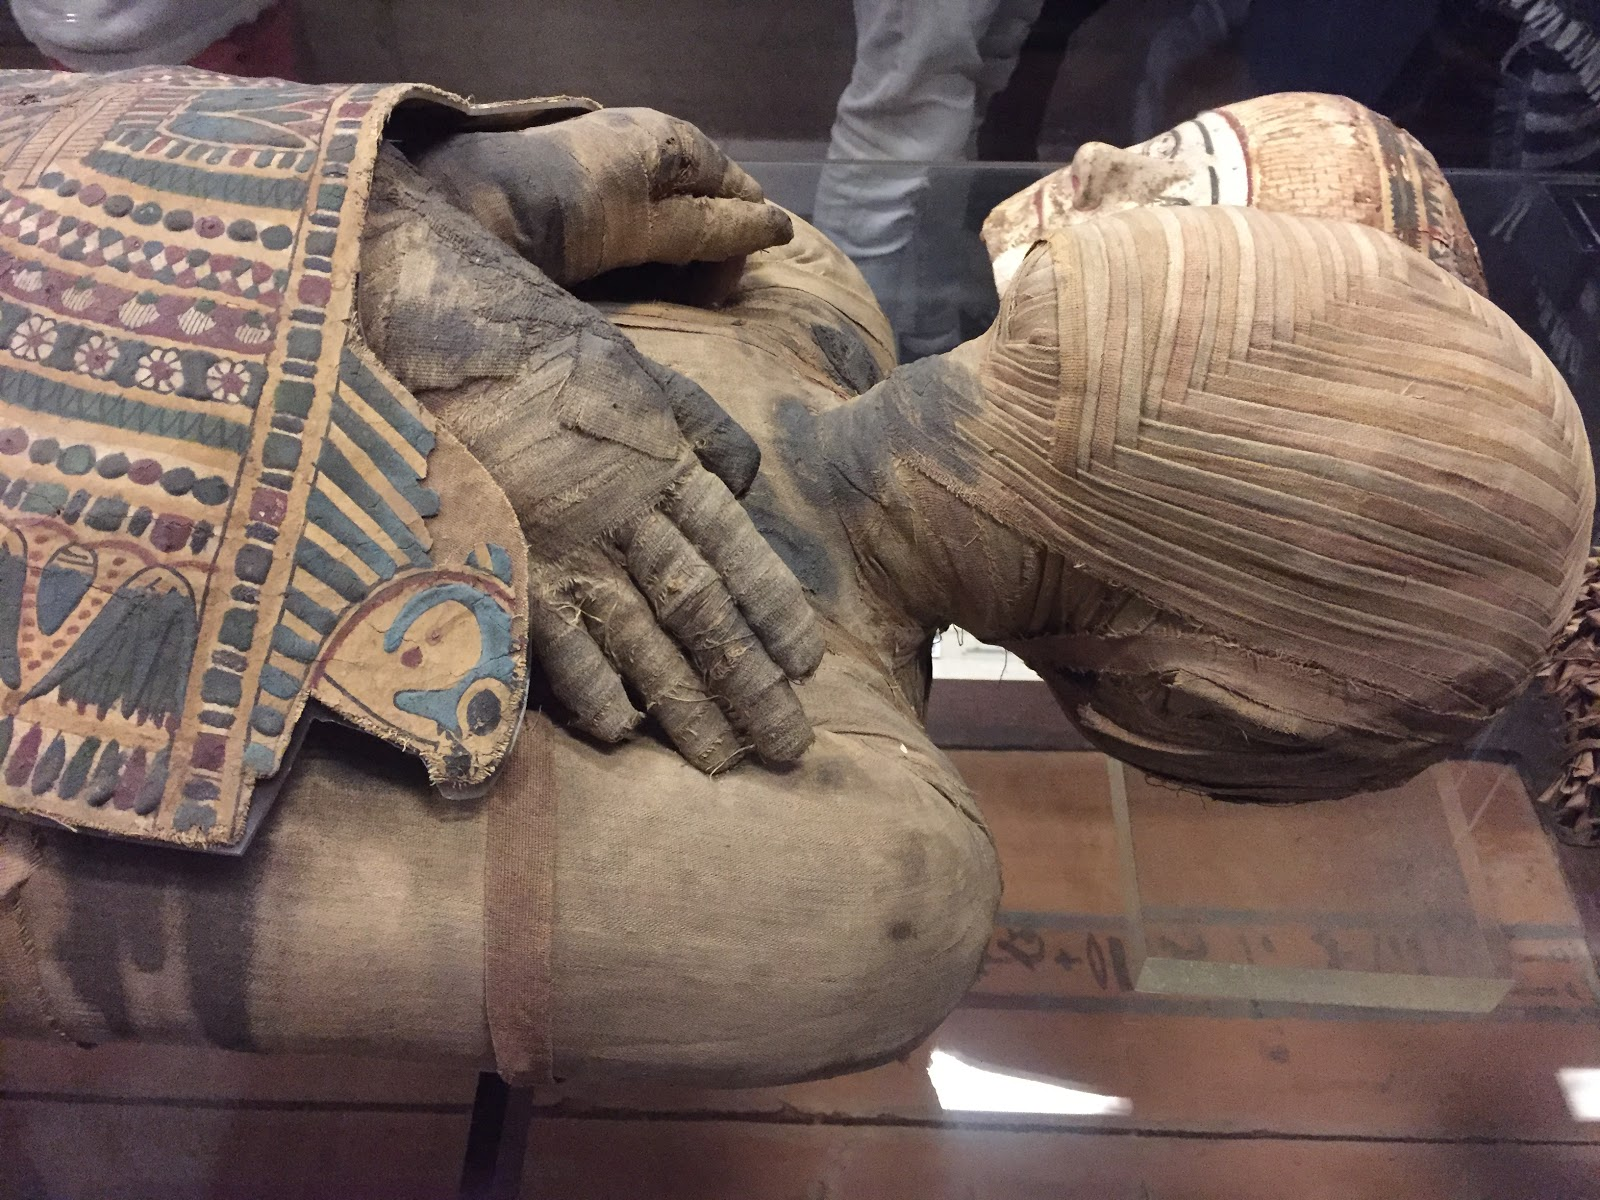 Revealing the neatly weaved face of Mummy @ Paris